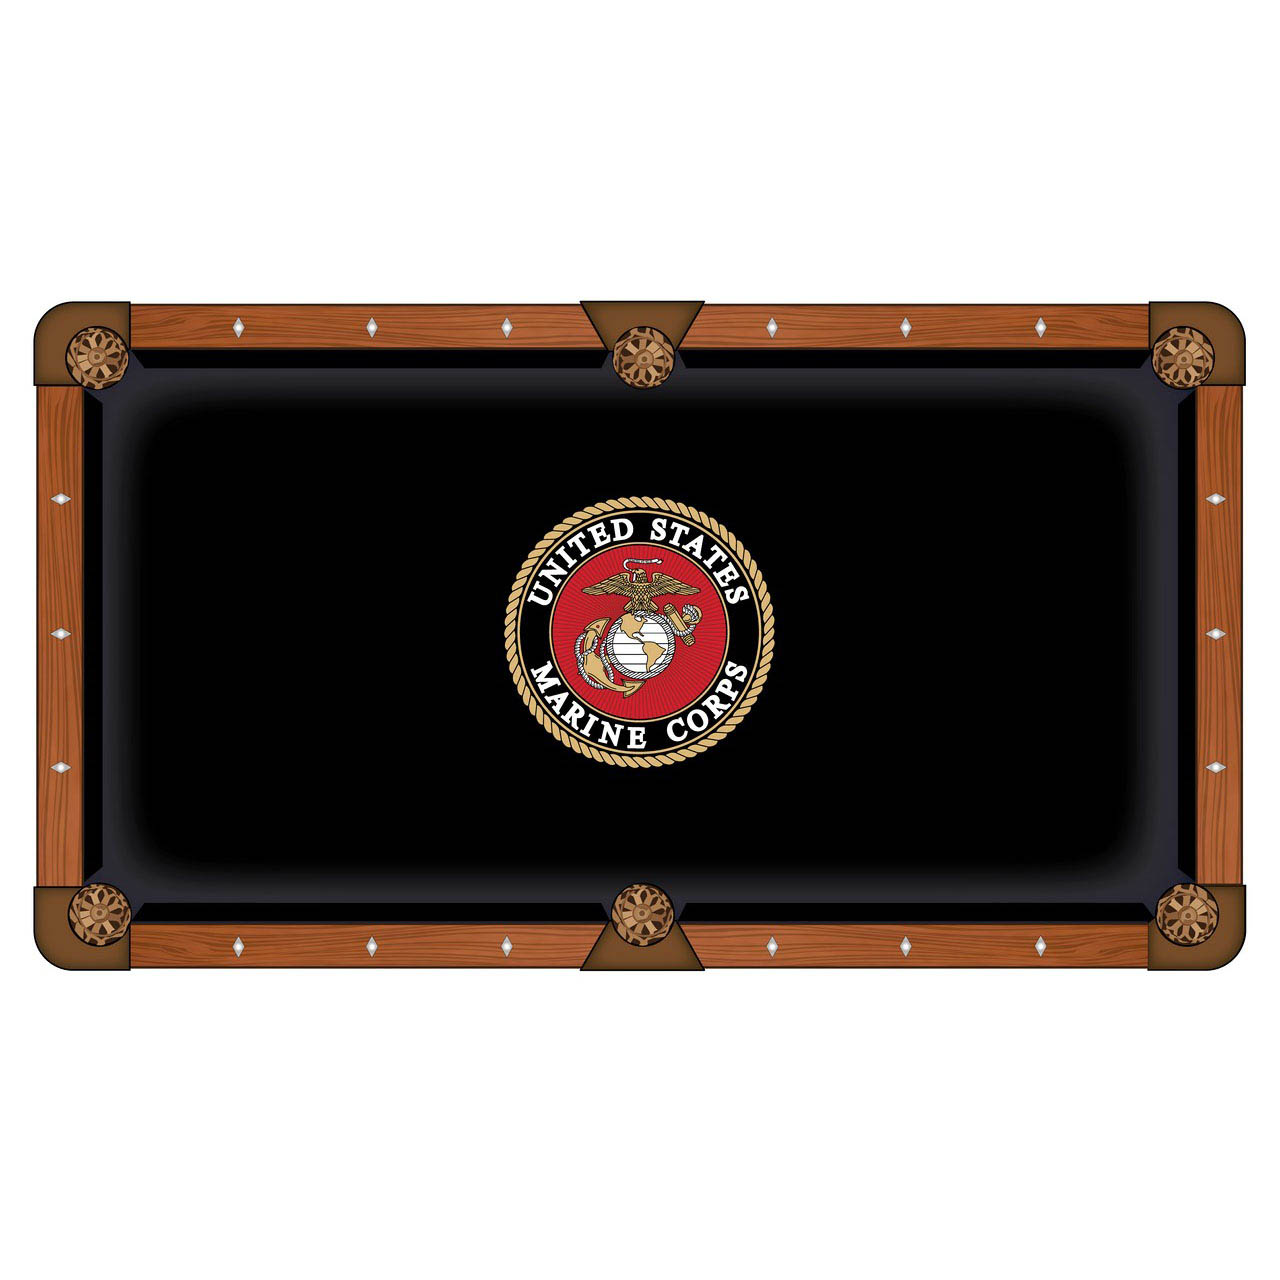 Stunning United-States-Marine-Corps-Pool-Table-Cloth Product Picture 578